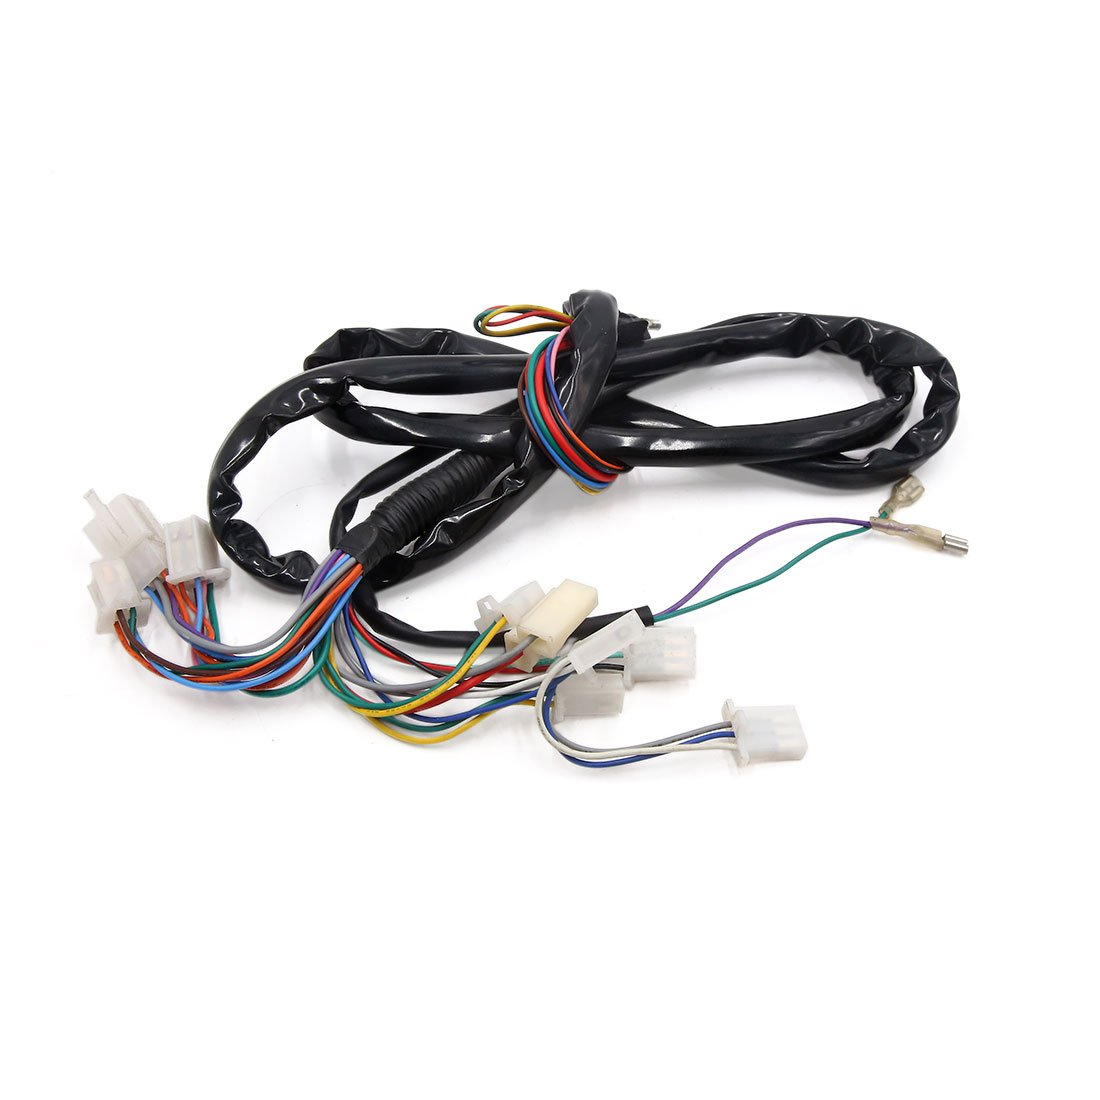 uxcell 174cm Length Black Main Wiring Harness Assembly for Motorcycle Electrical Scooter